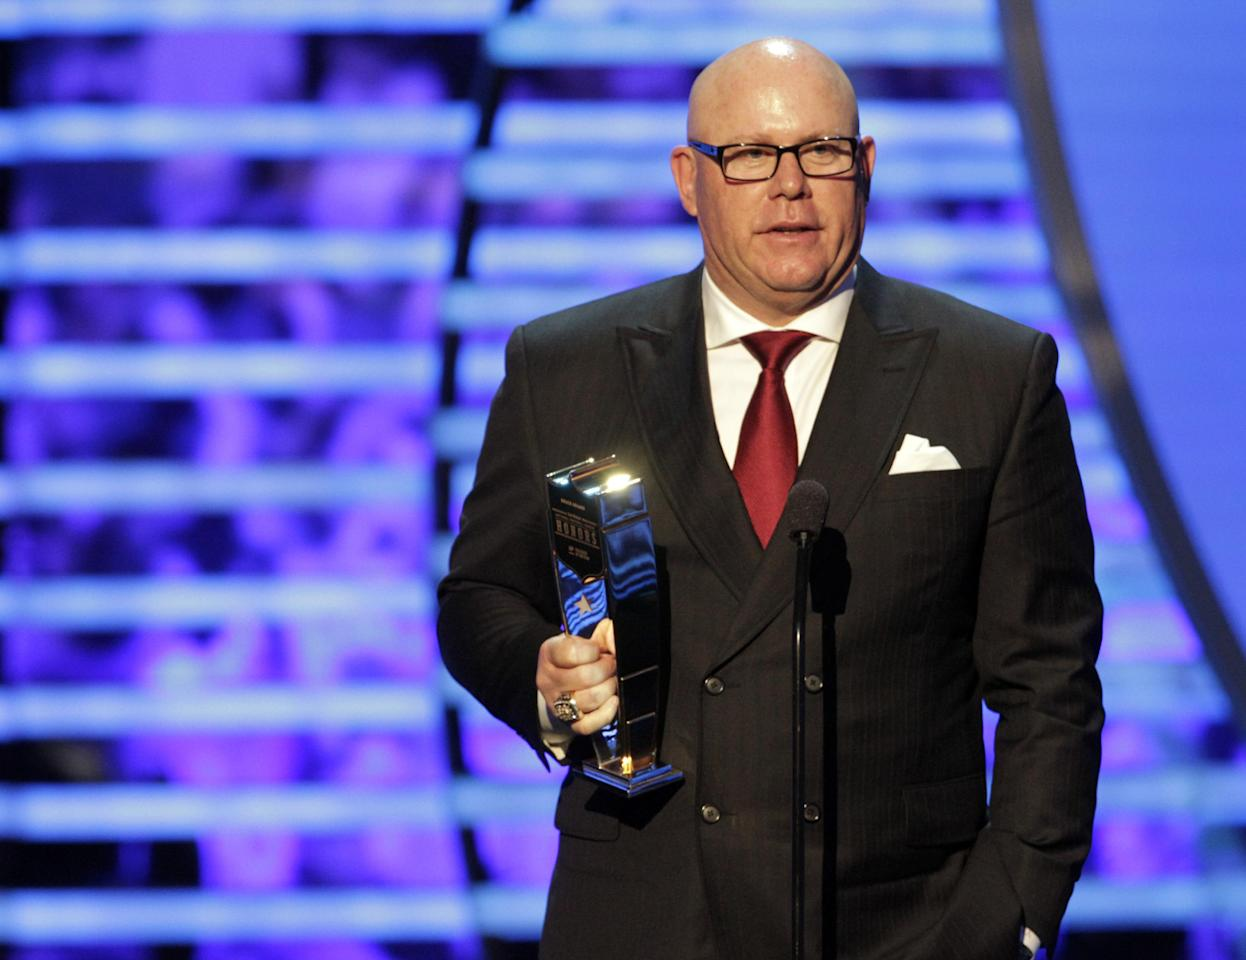 Bruce Arians, formerly with the Indianapolis Colts and now with the Arizona Cardinals, accepts the AP Coach of the Year award at the 2nd Annual NFL Honors on Saturday, Feb. 2, 2013 in New Orleans. (Photo by AJ Mast/Invision/AP)